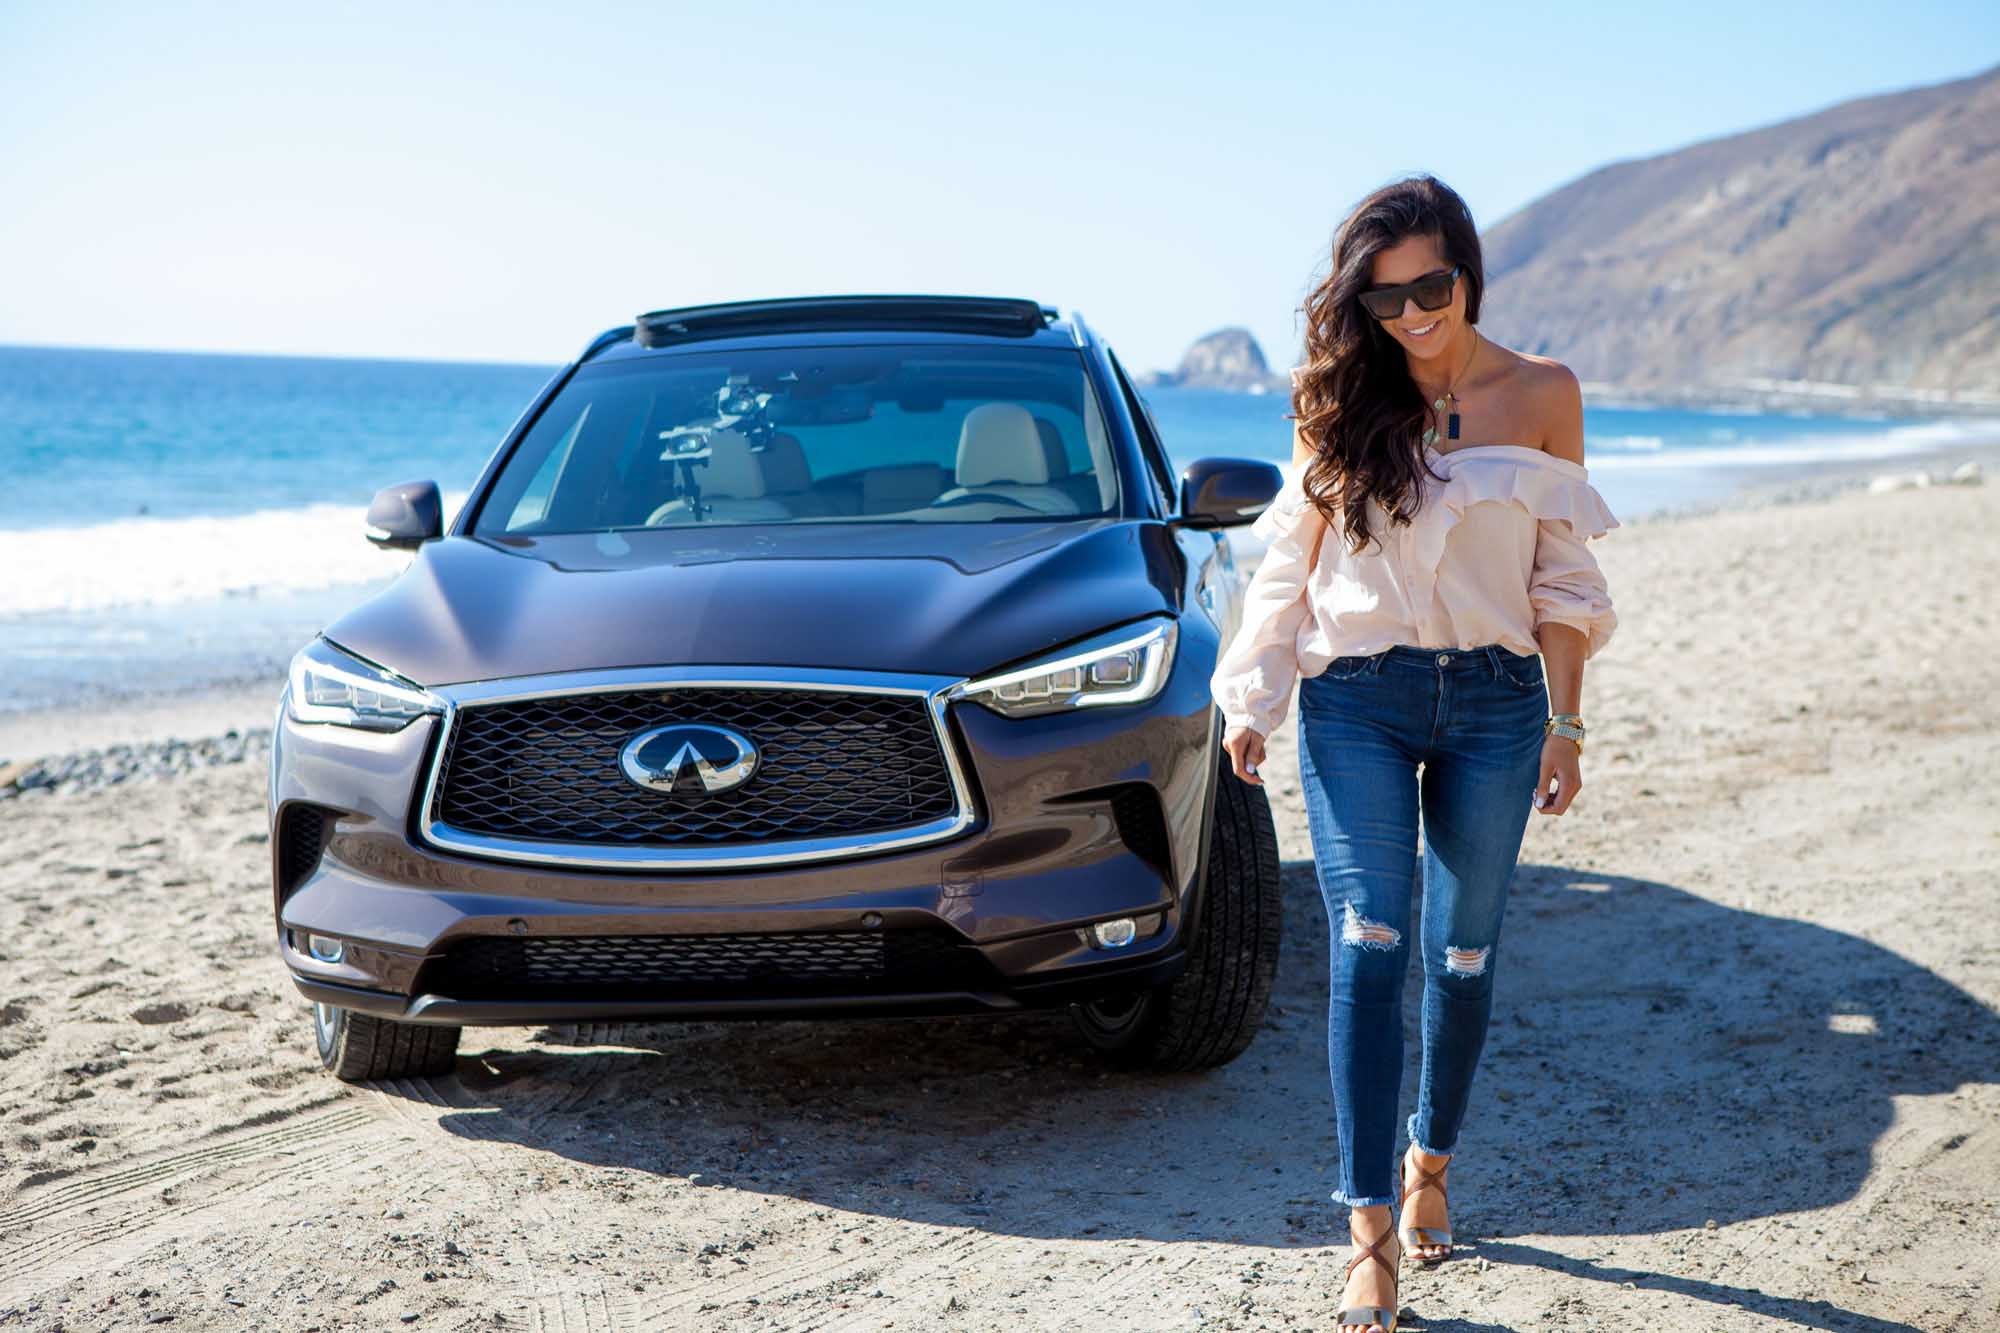 Emily Ann Gemma on beach in front of Infiniti QX-50 | Fashion Photography | Car Photography | @emilyanngemma | THE SWEETEST THING | @thegemmagang | Commercial Photography | Shot in Los Angeles, California for Crispin Porter + Bogusky